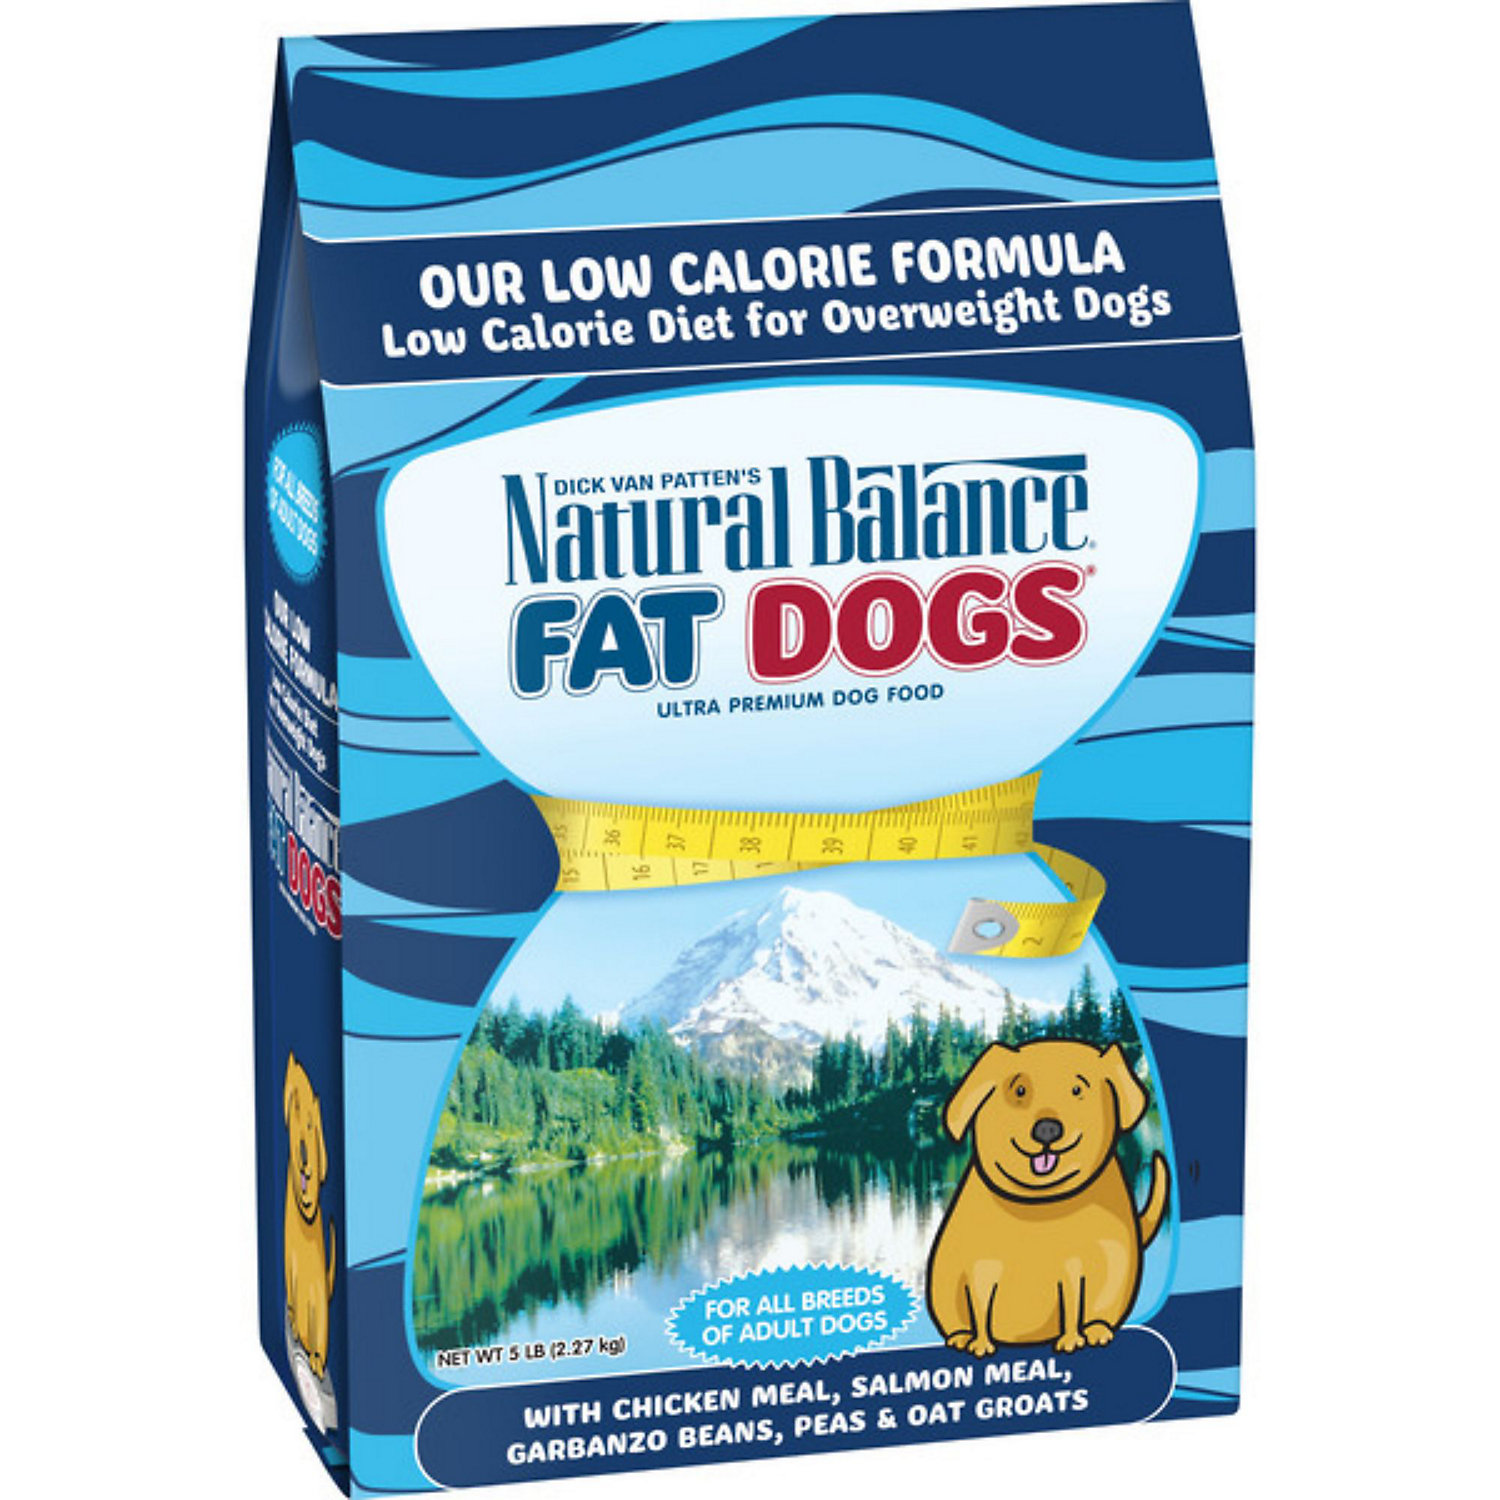 Natural Balance Fat Dogs Adult Dog Food 15 Lbs.